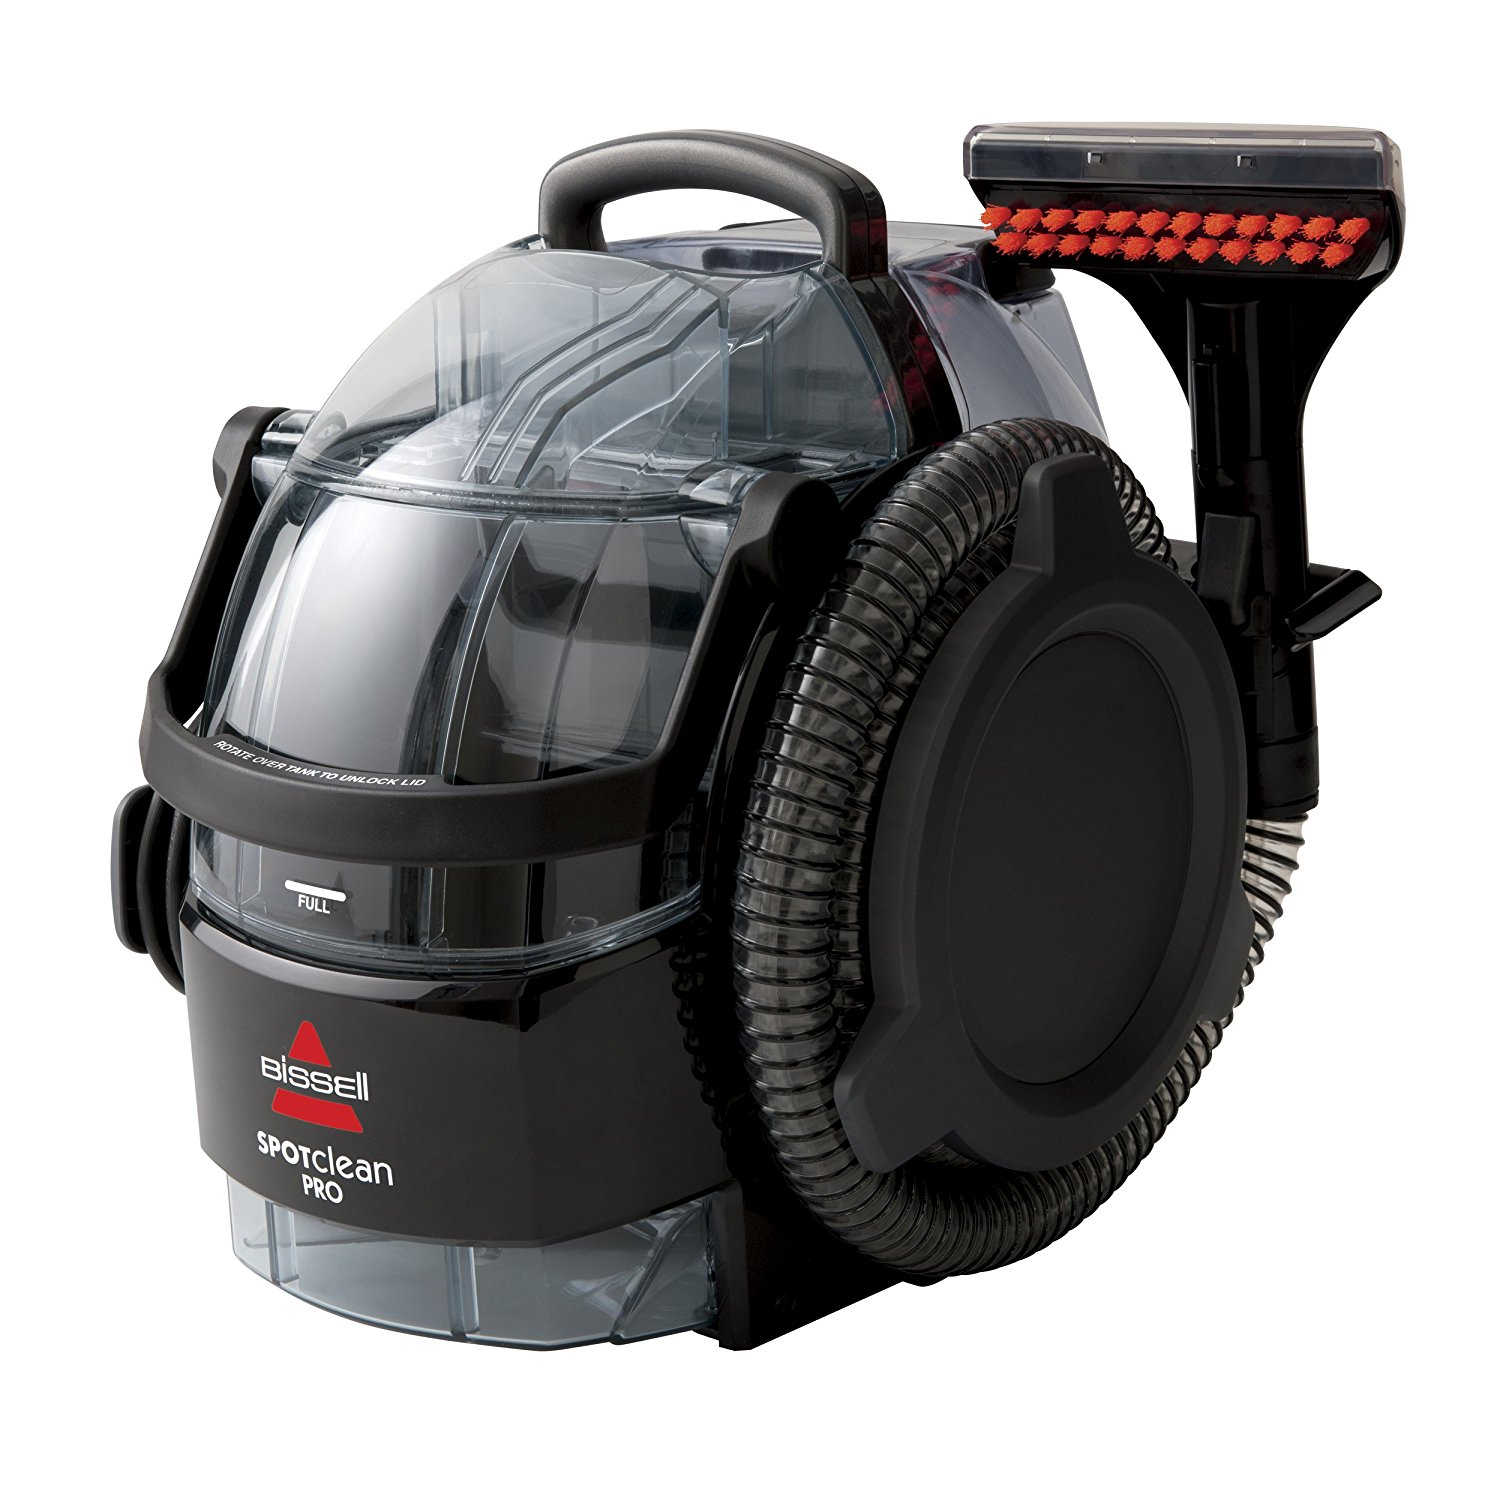 Bissell 3624 SpotClean Pro Review - Slant